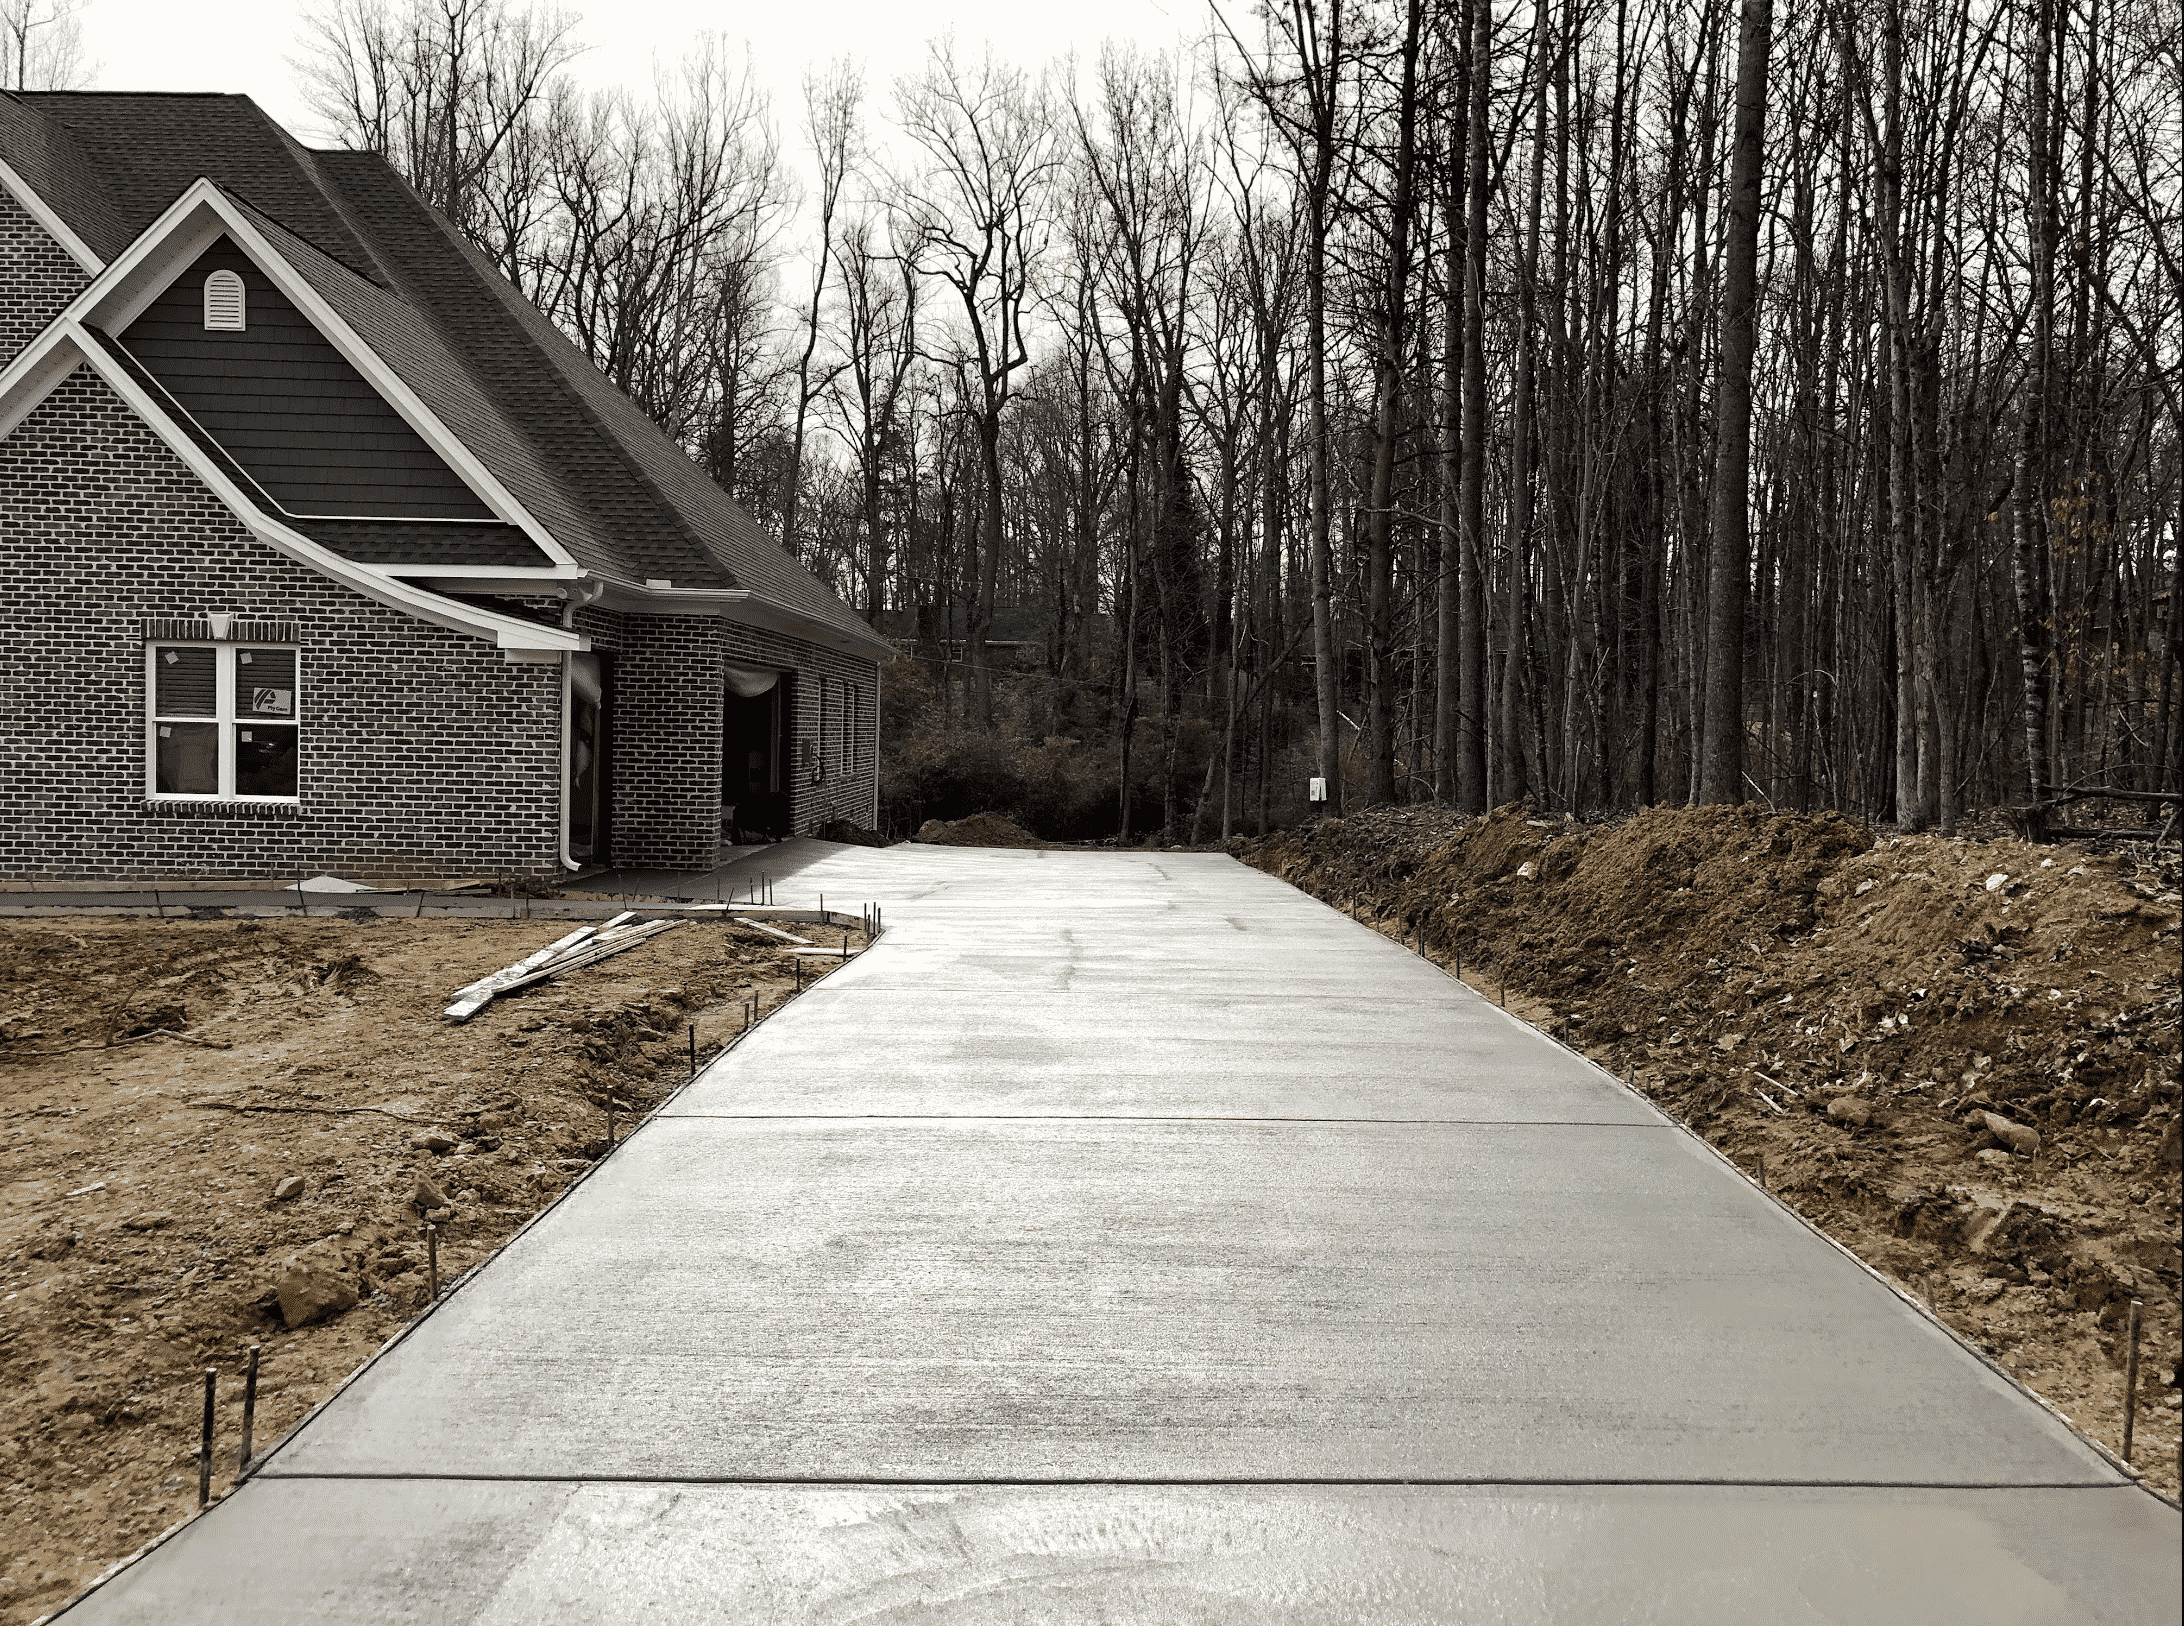 Concrete Driveway and Red Brick House